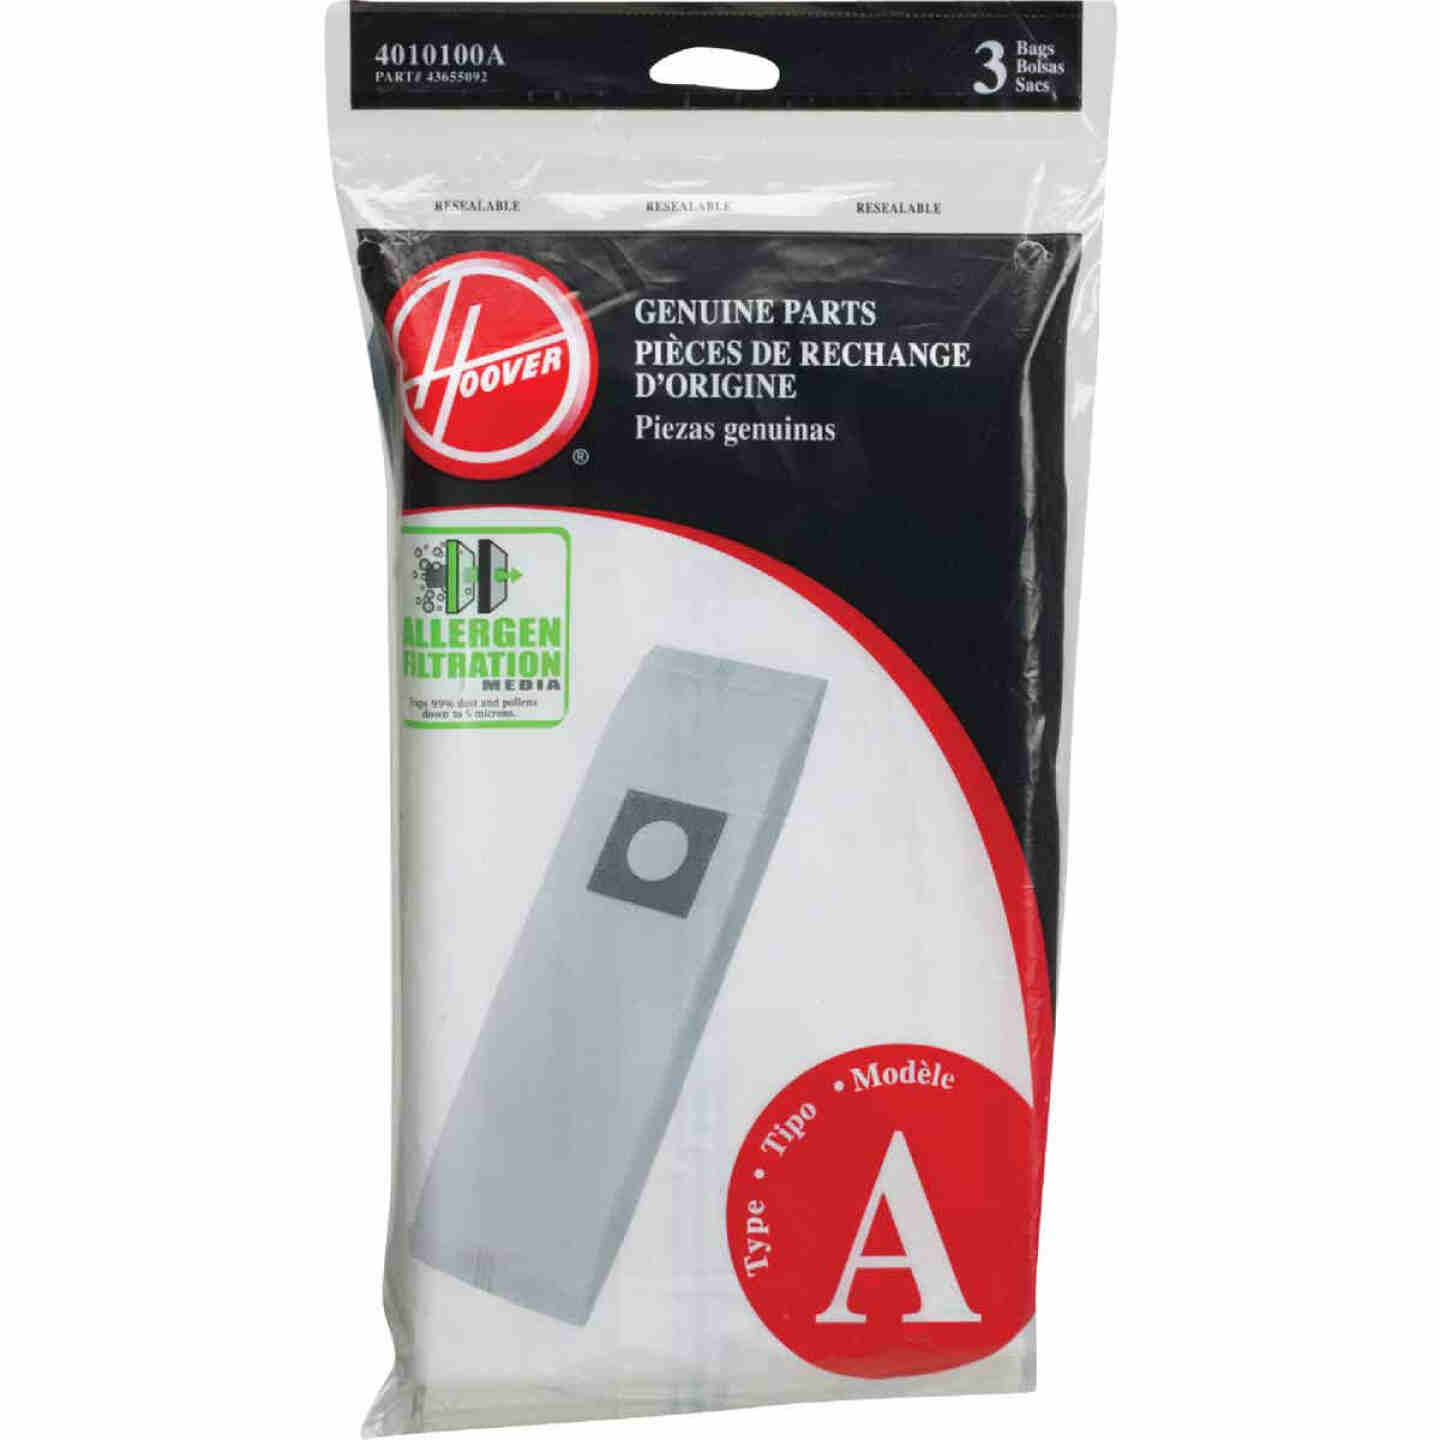 Hoover Type A Allergen Filtration Vacuum Bag (3-Pack) Image 1